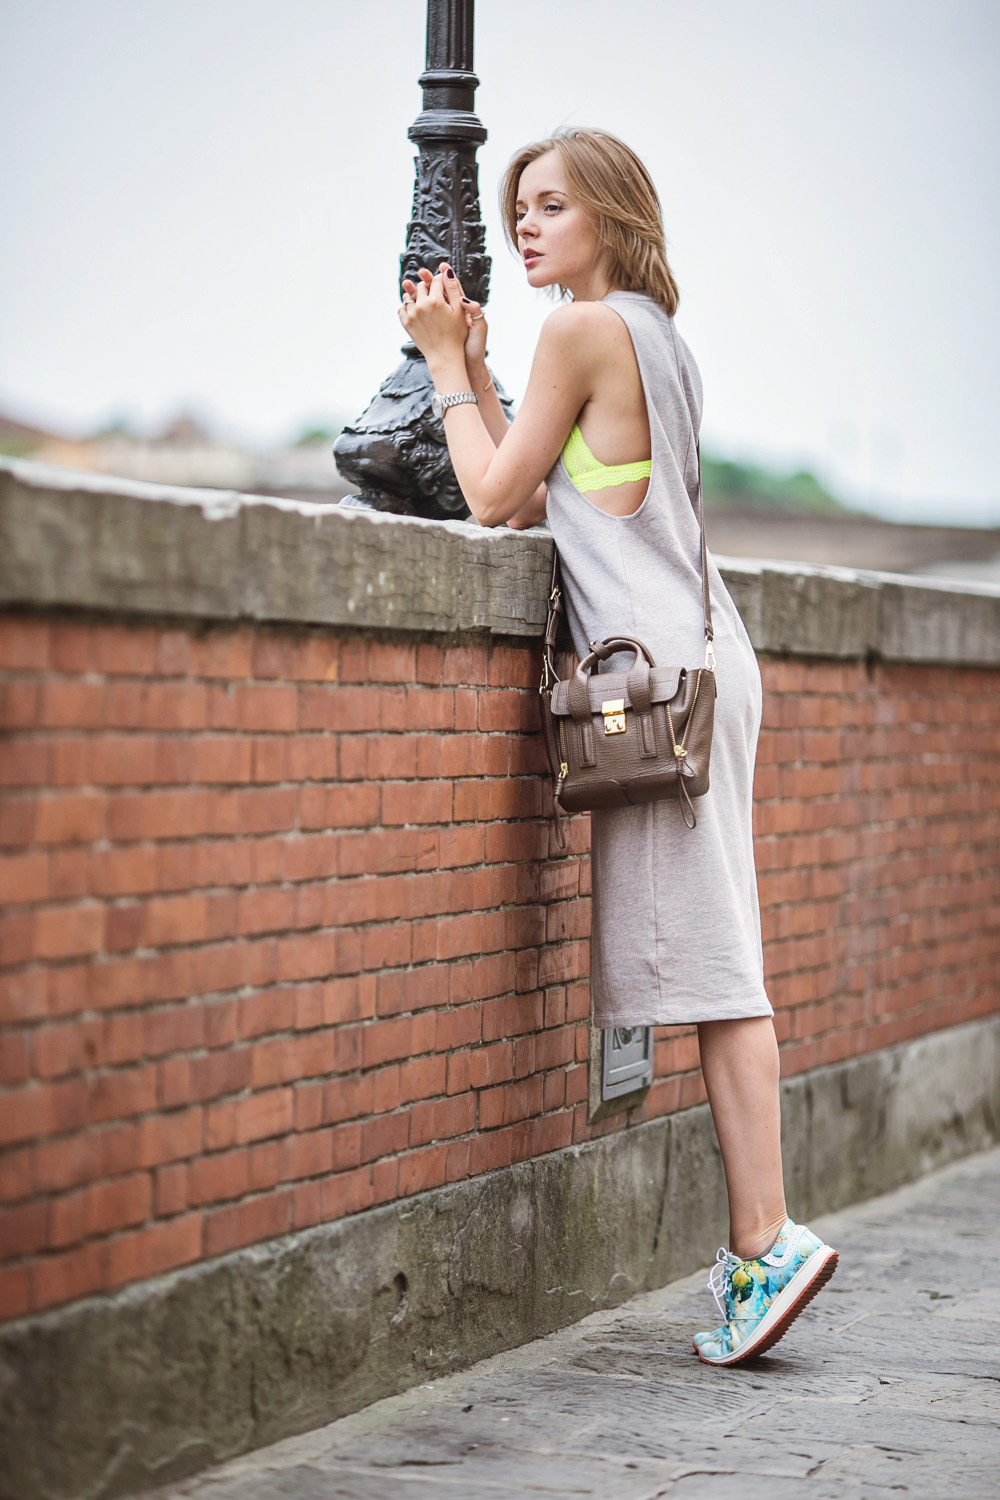 darya kamalova thecablook russian italian fashion blogger makes a street style in florence firenze in sporty chic outfit asos dress lace neon bra phillip lim mini pashli taupe bag-27 copy